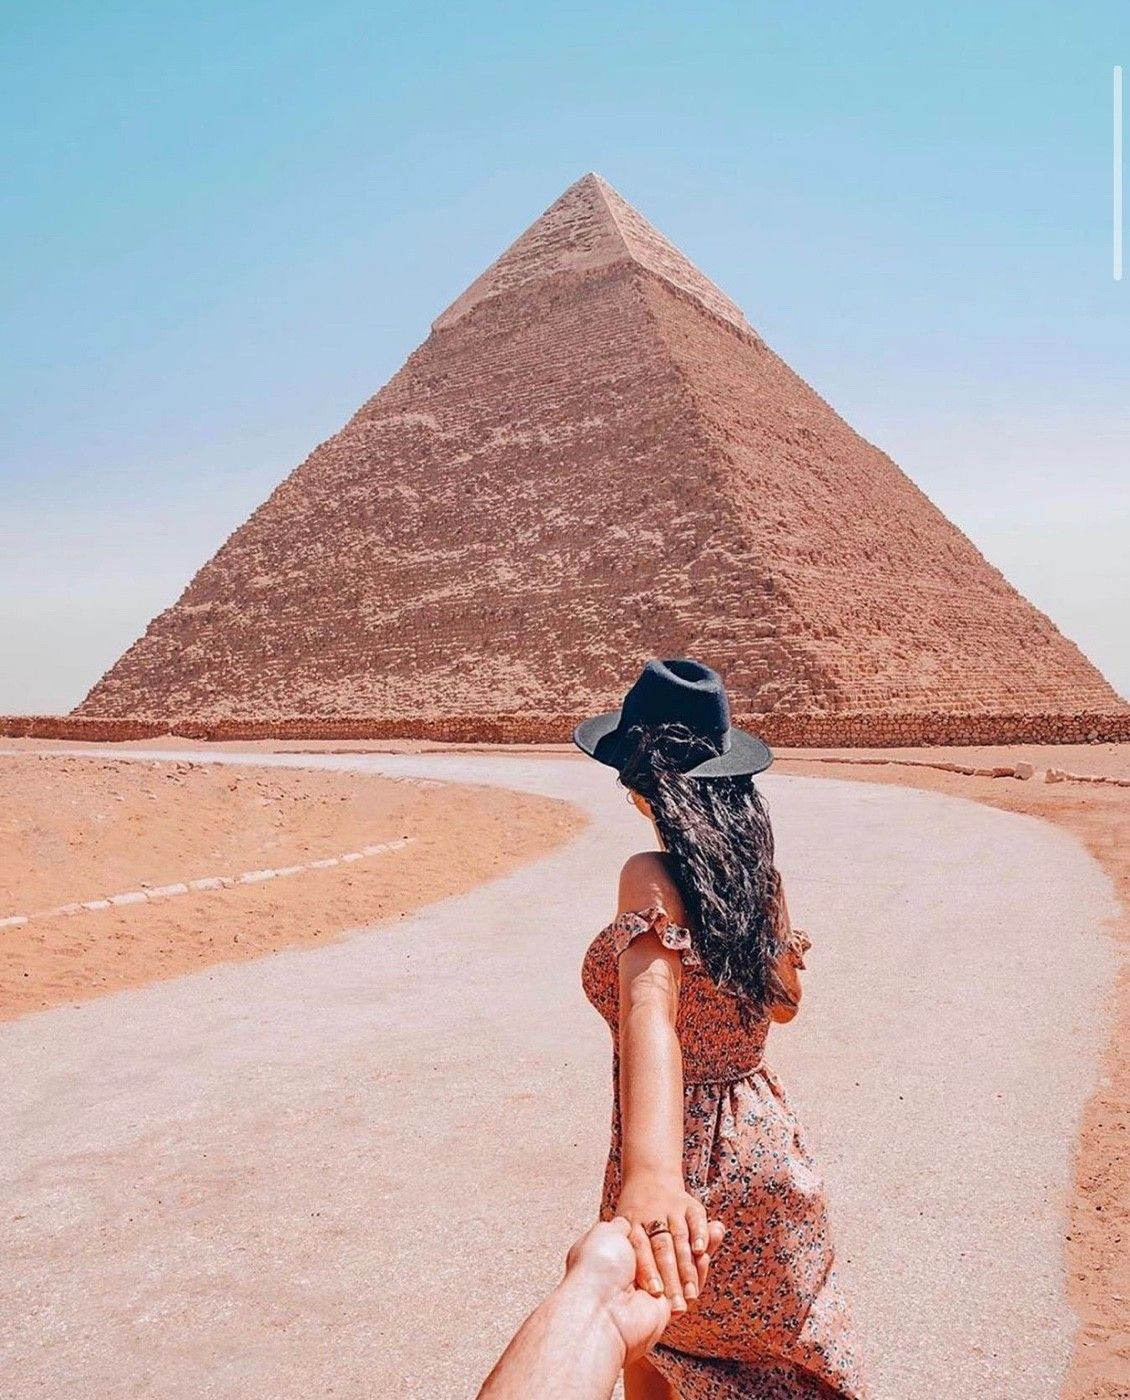 Ever wonder how pyramids were made? Thousands of years ago there were no machines! So humans had to carry car size stones to the top....🤔